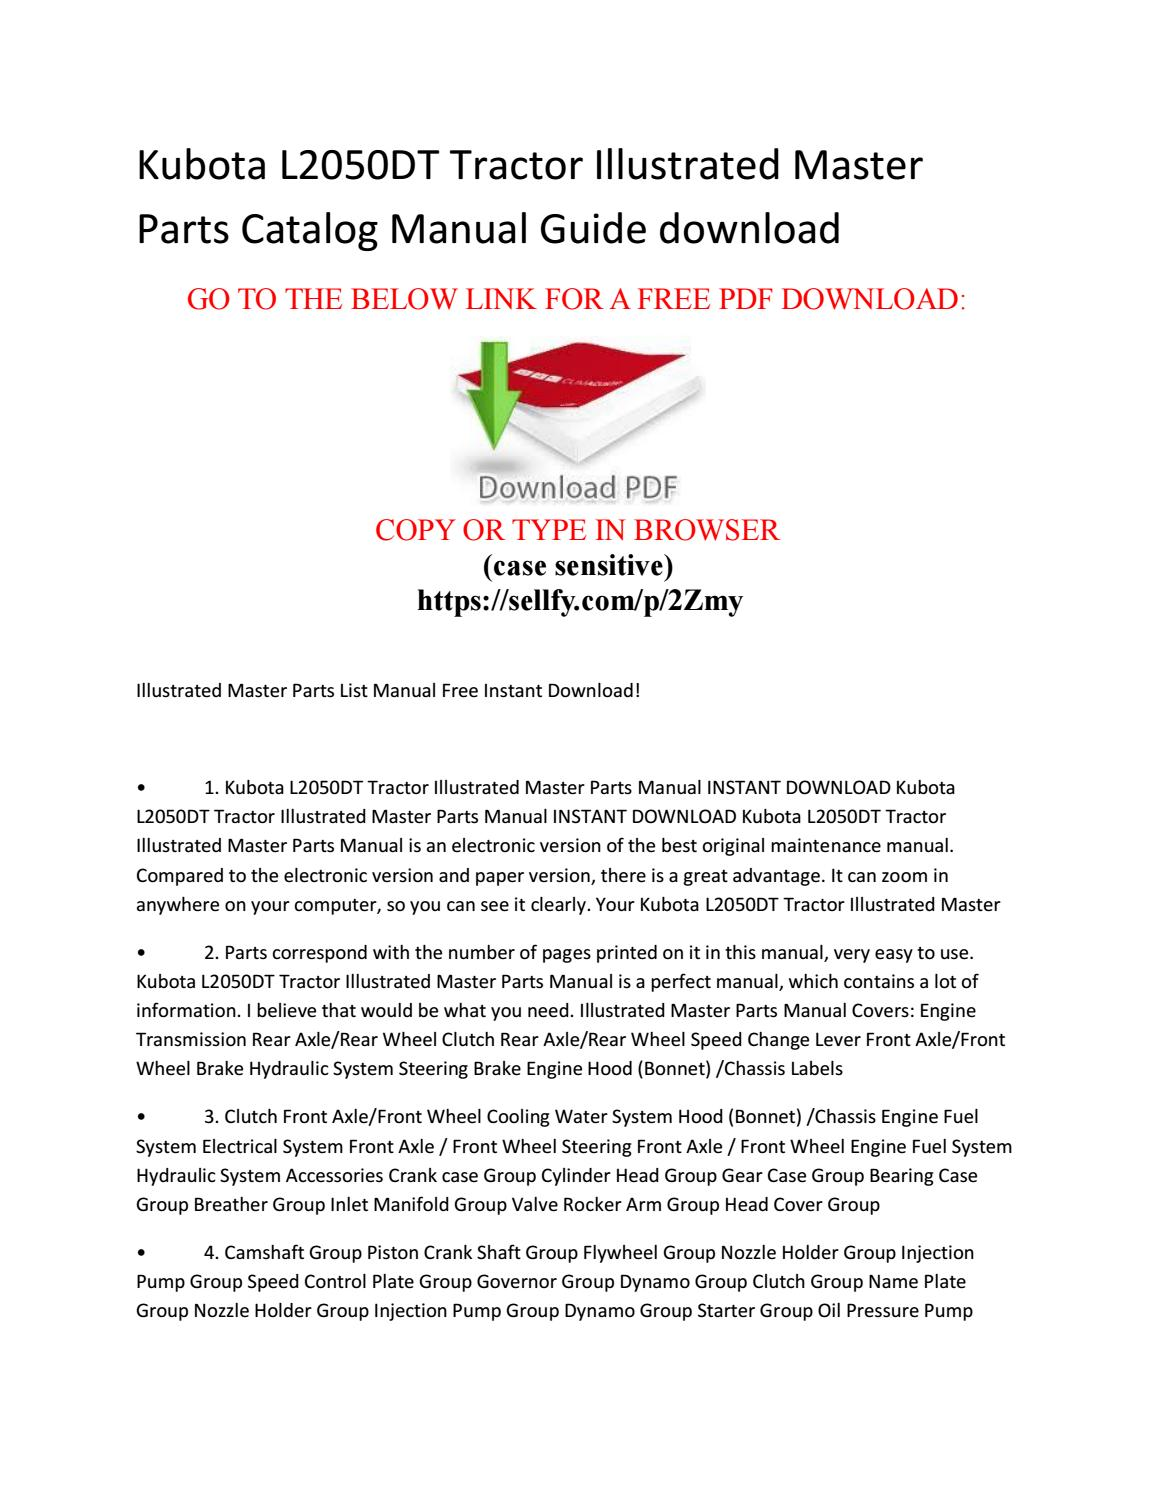 Kubota l2050dt tractor illustrated master parts catalog manual guide free  download by JIM - issuu